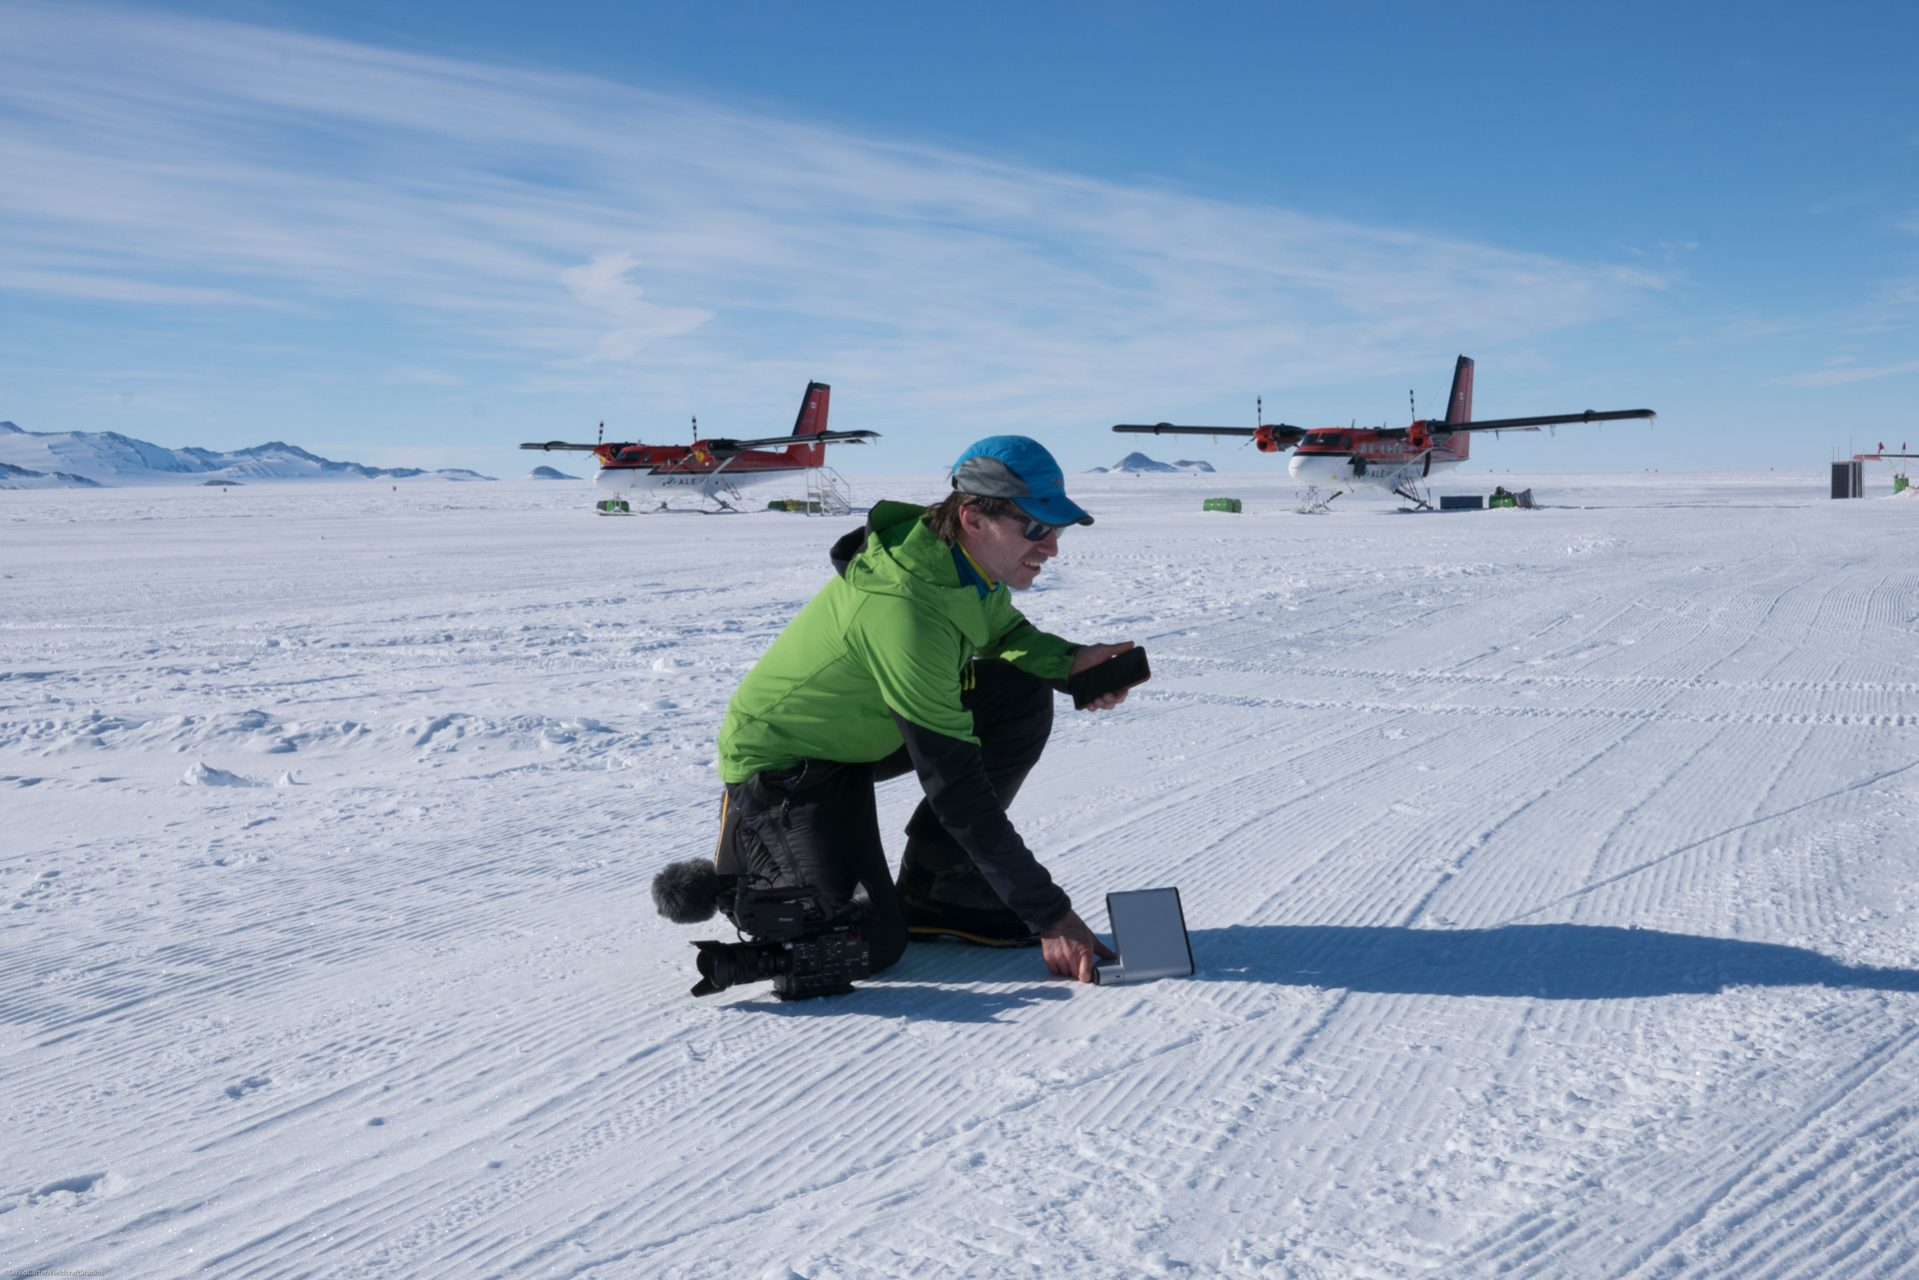 Dave Carter transmitting images from Antarctica with Ranulph Fiennes